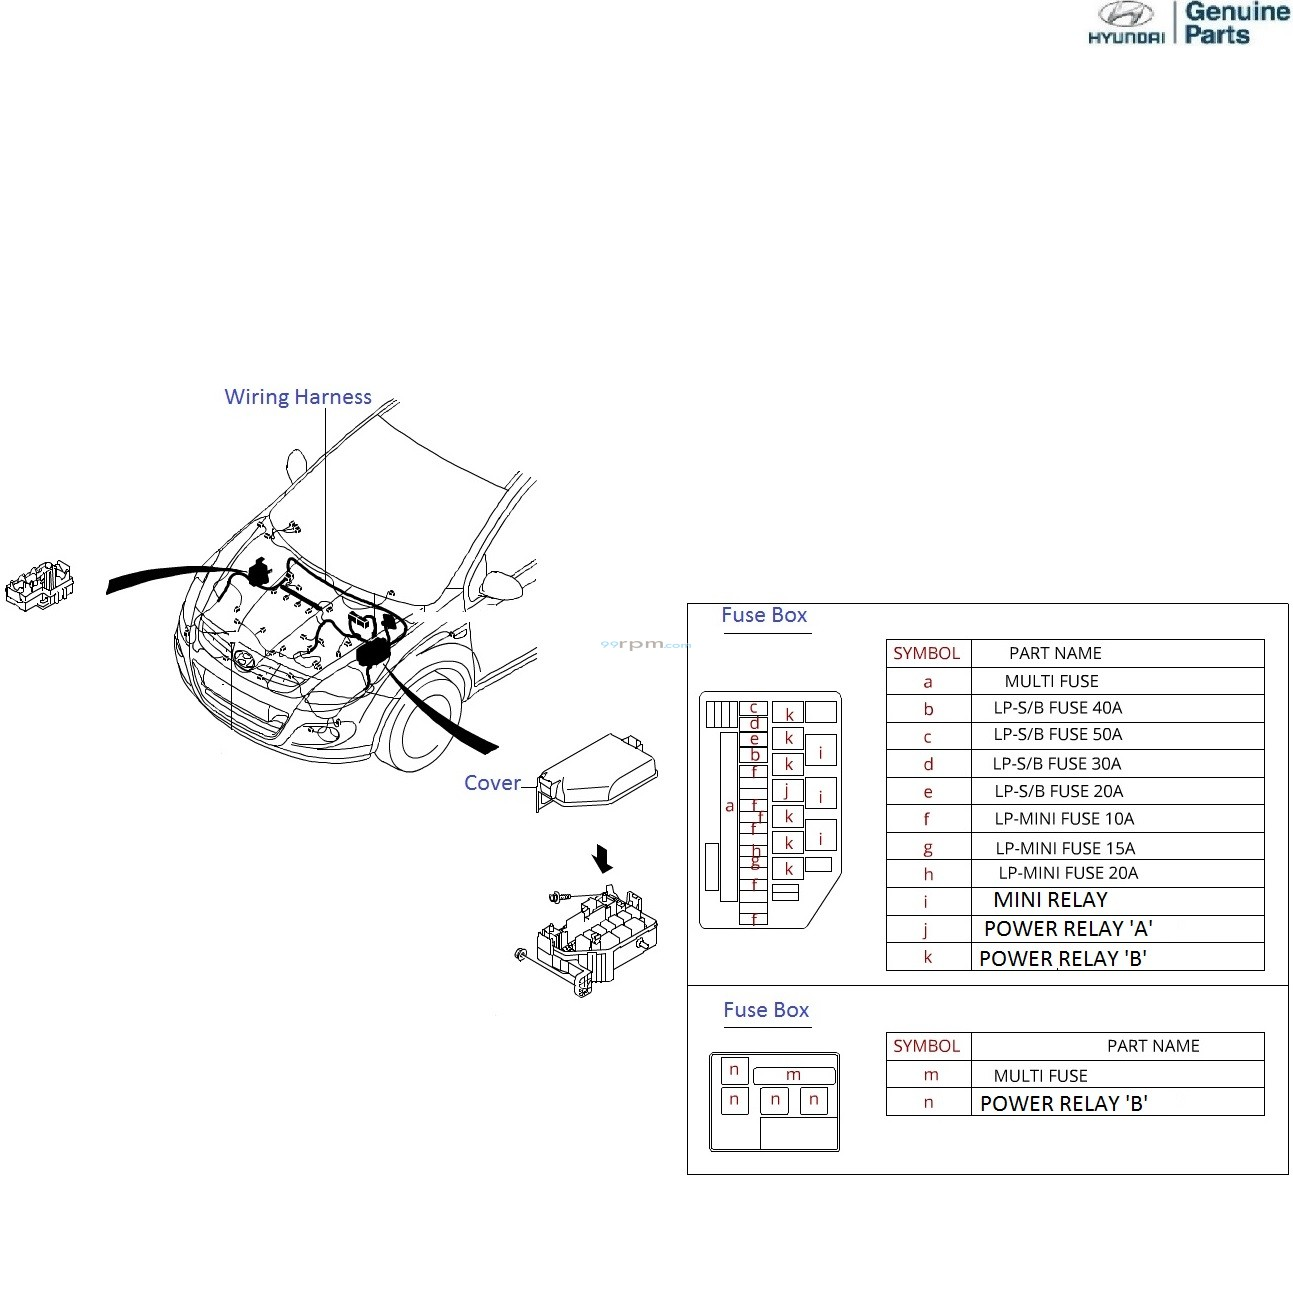 hight resolution of hyundai ix20 wiring diagram wiring libraryhyundai i20 1 4 crdi front wiring harness 2009 hyundai sonata